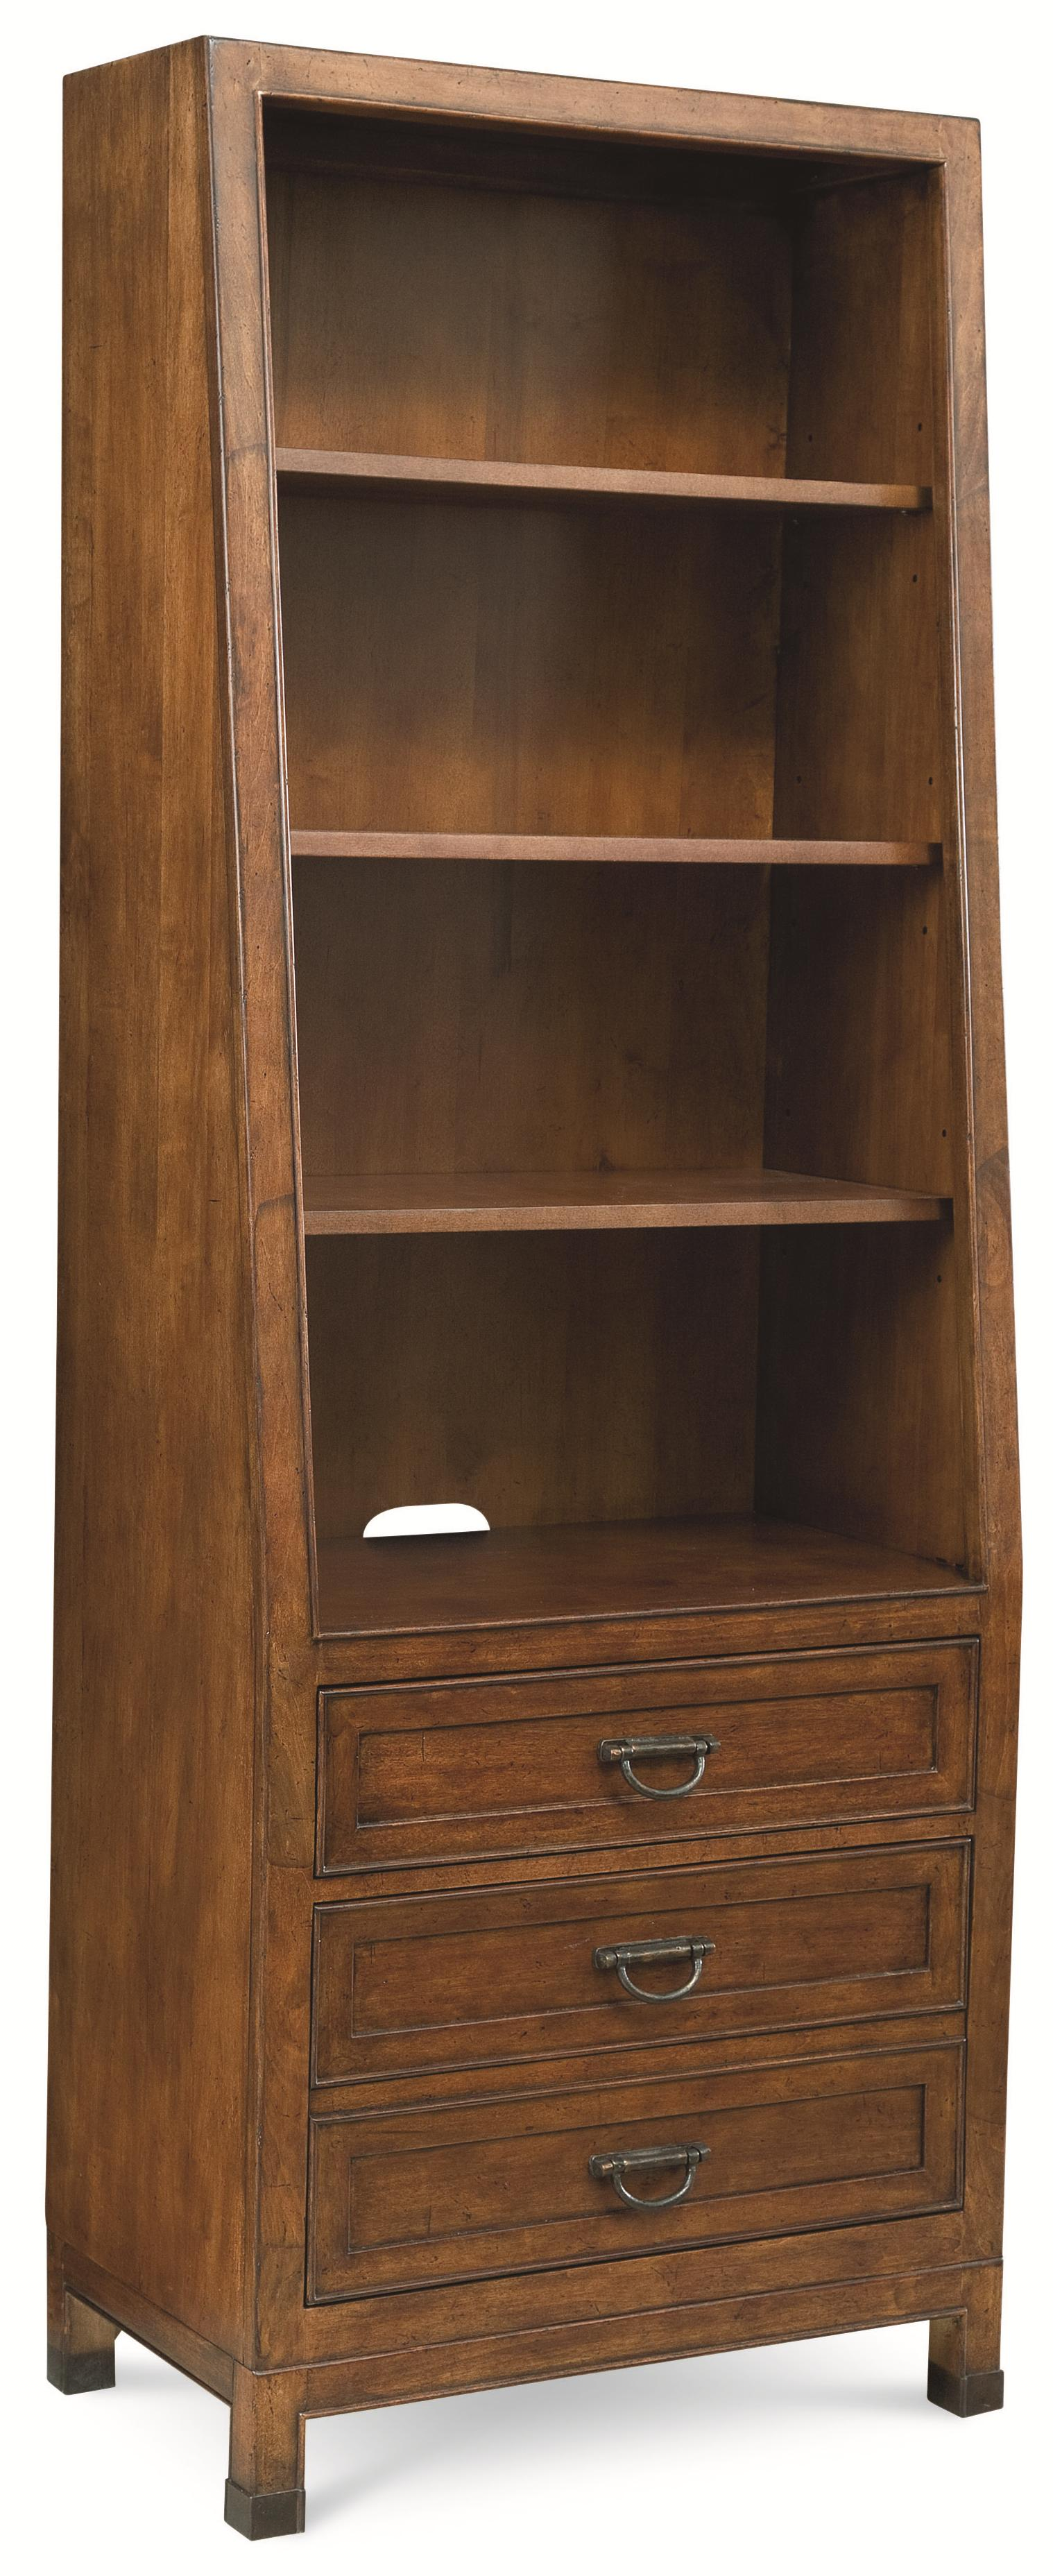 Thomasville® American Anthem Pier Cabinet - Item Number: 82841-910